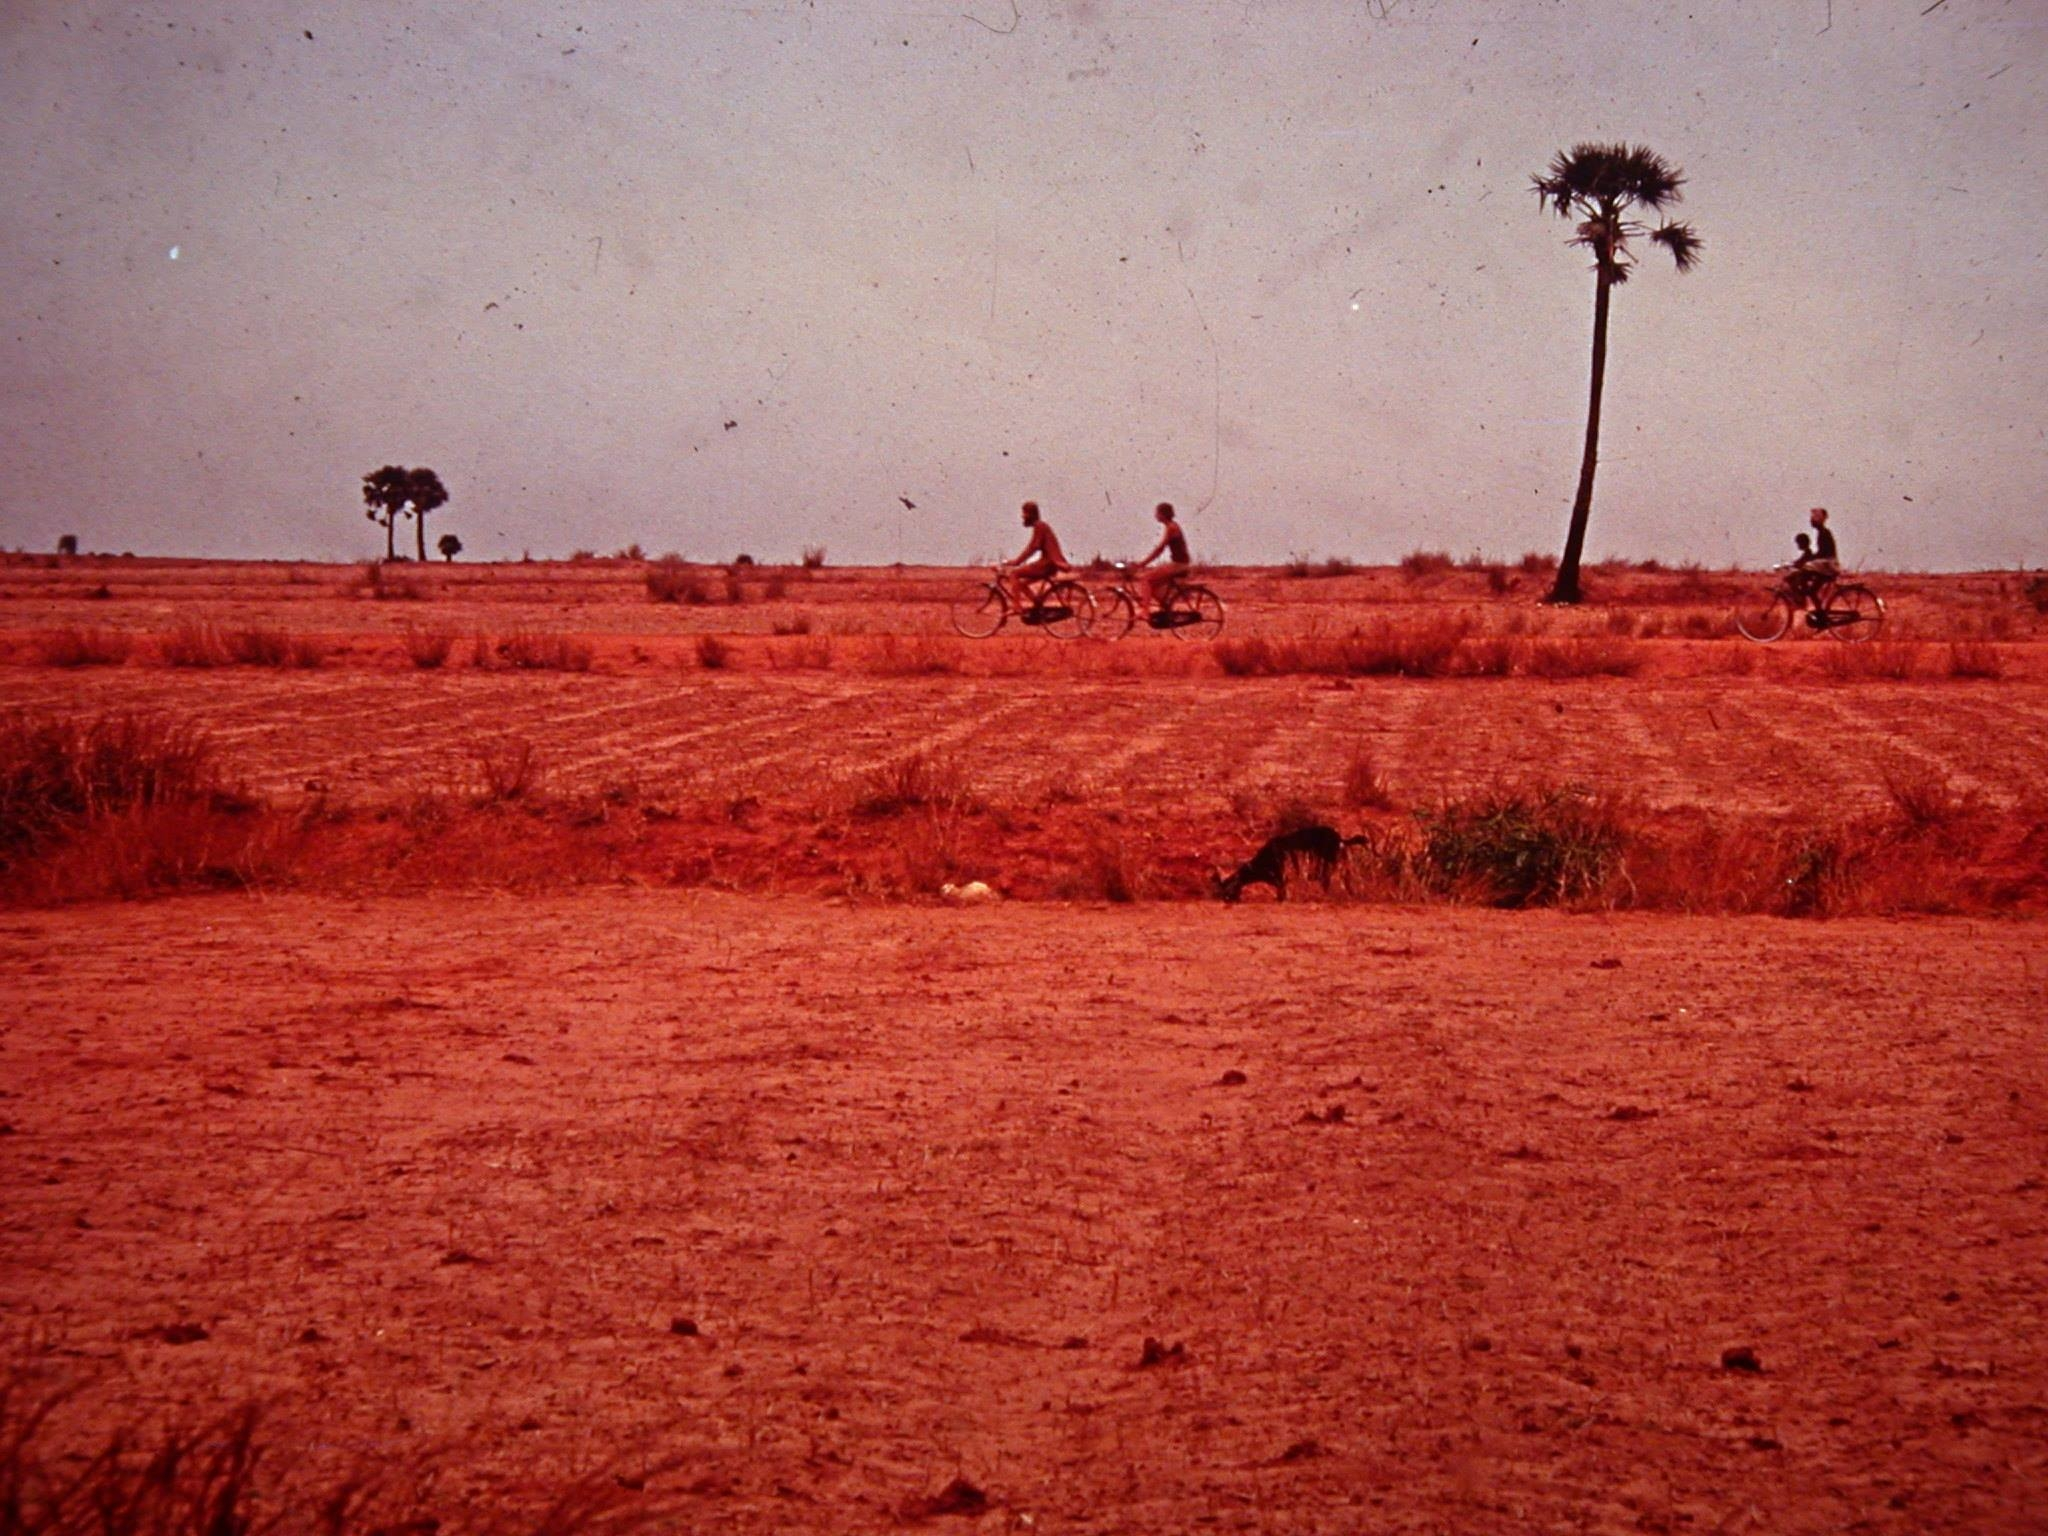 Red earth without trees